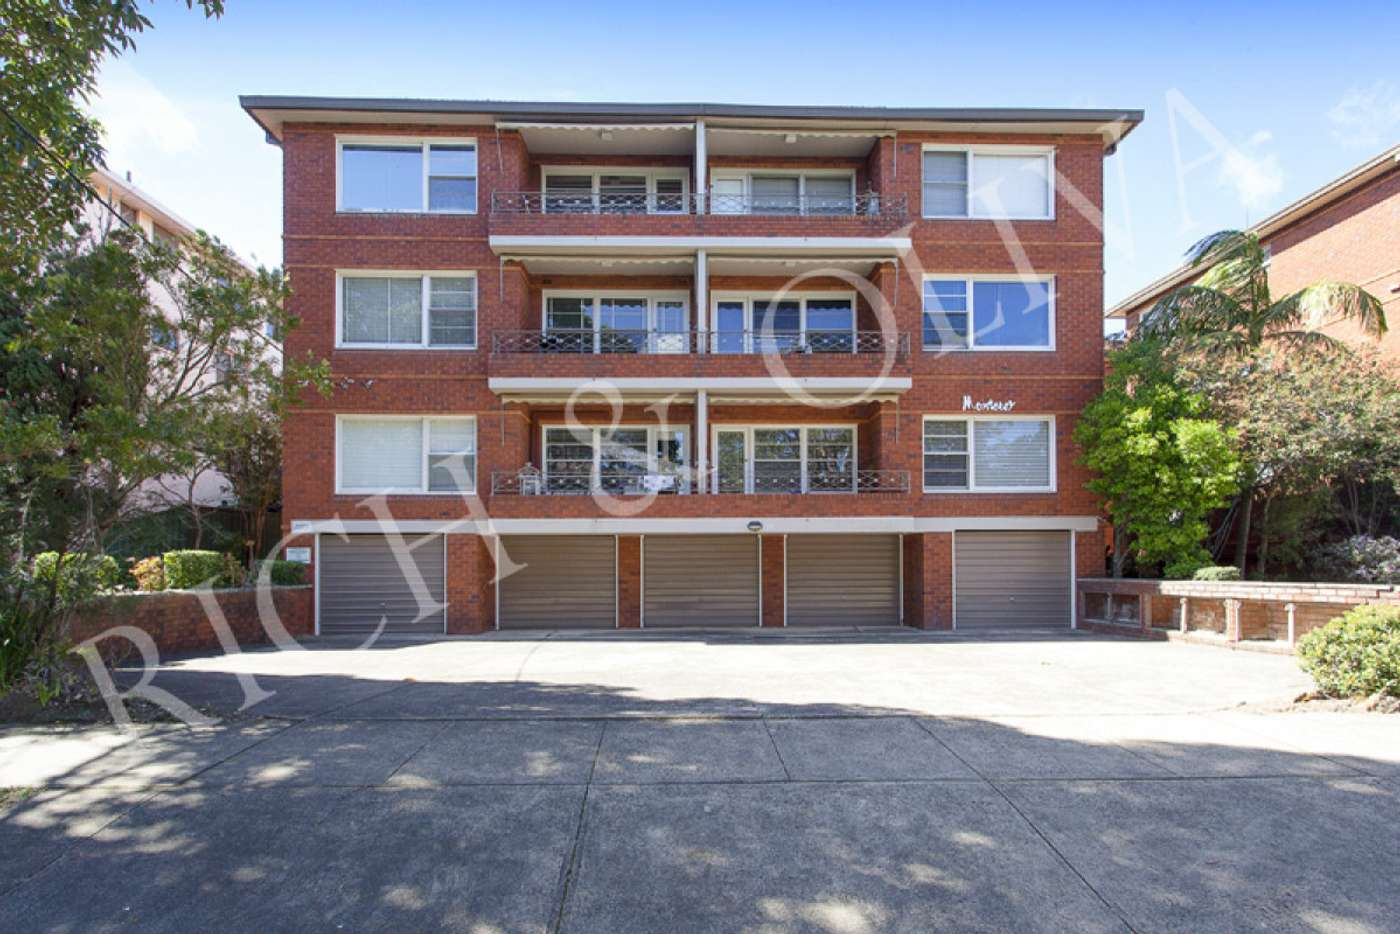 Main view of Homely apartment listing, 11/26 Tintern Road, Ashfield NSW 2131